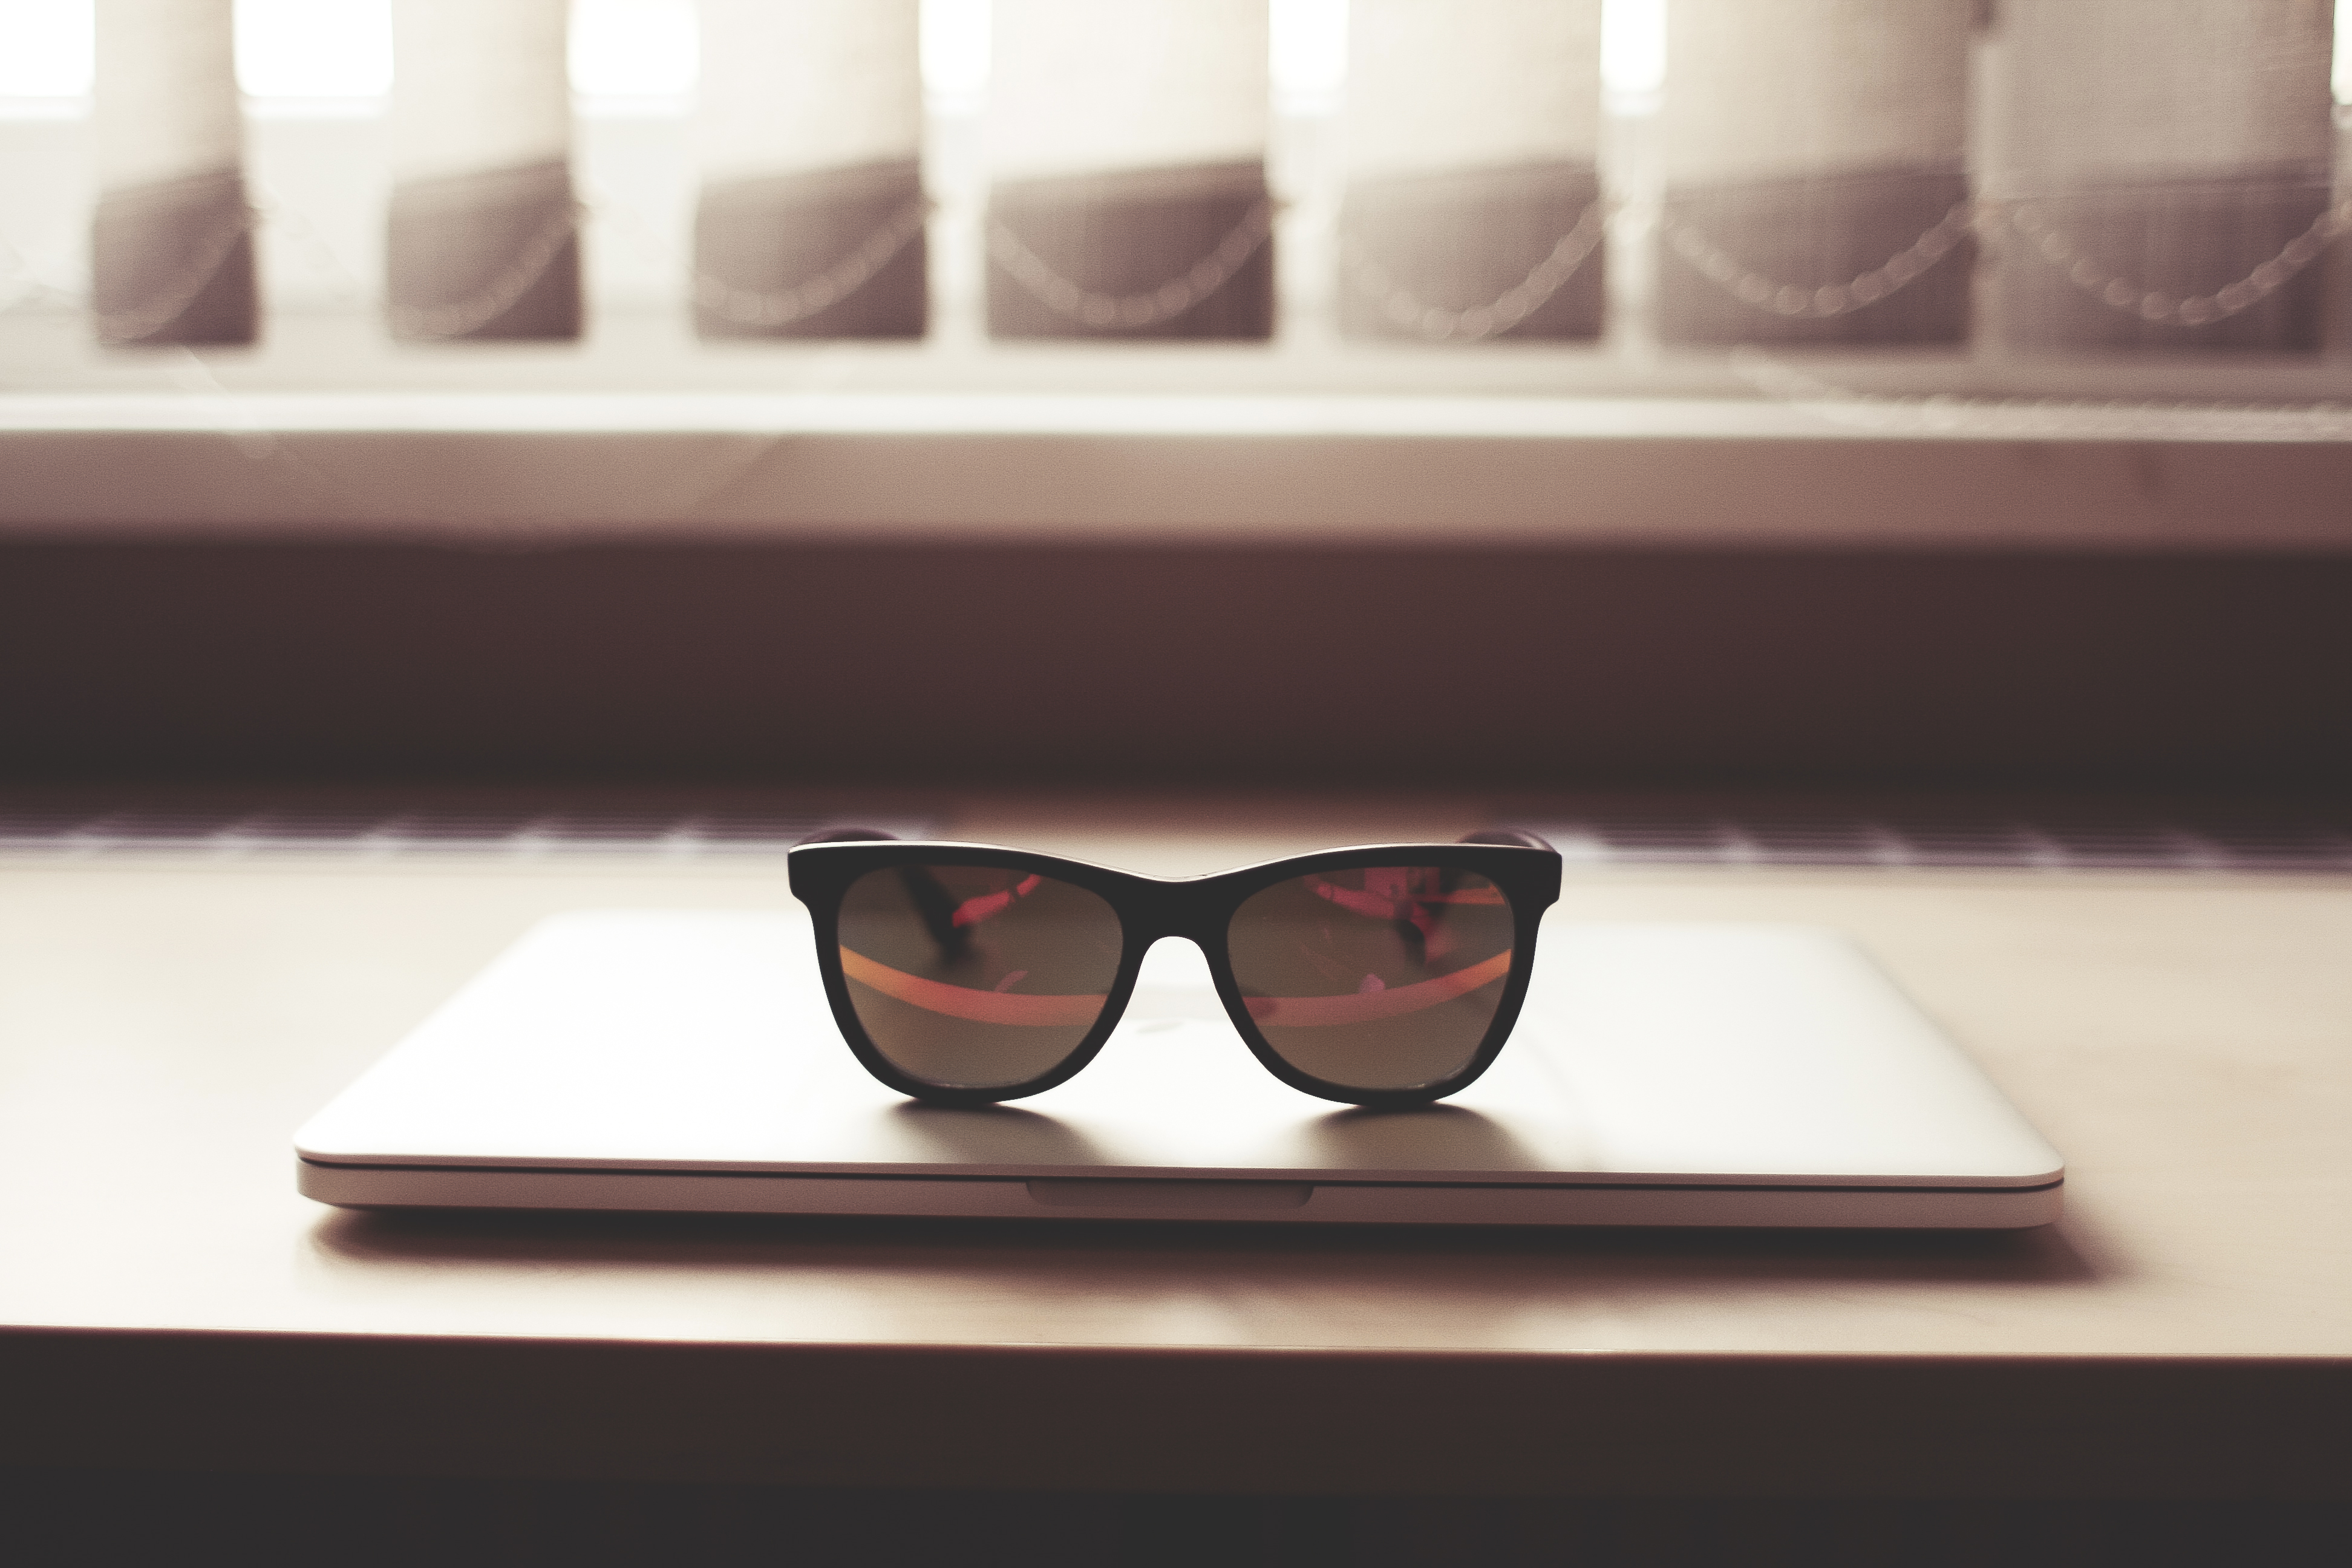 fashion-glasses-on-macbook-pro-picjumbo-com